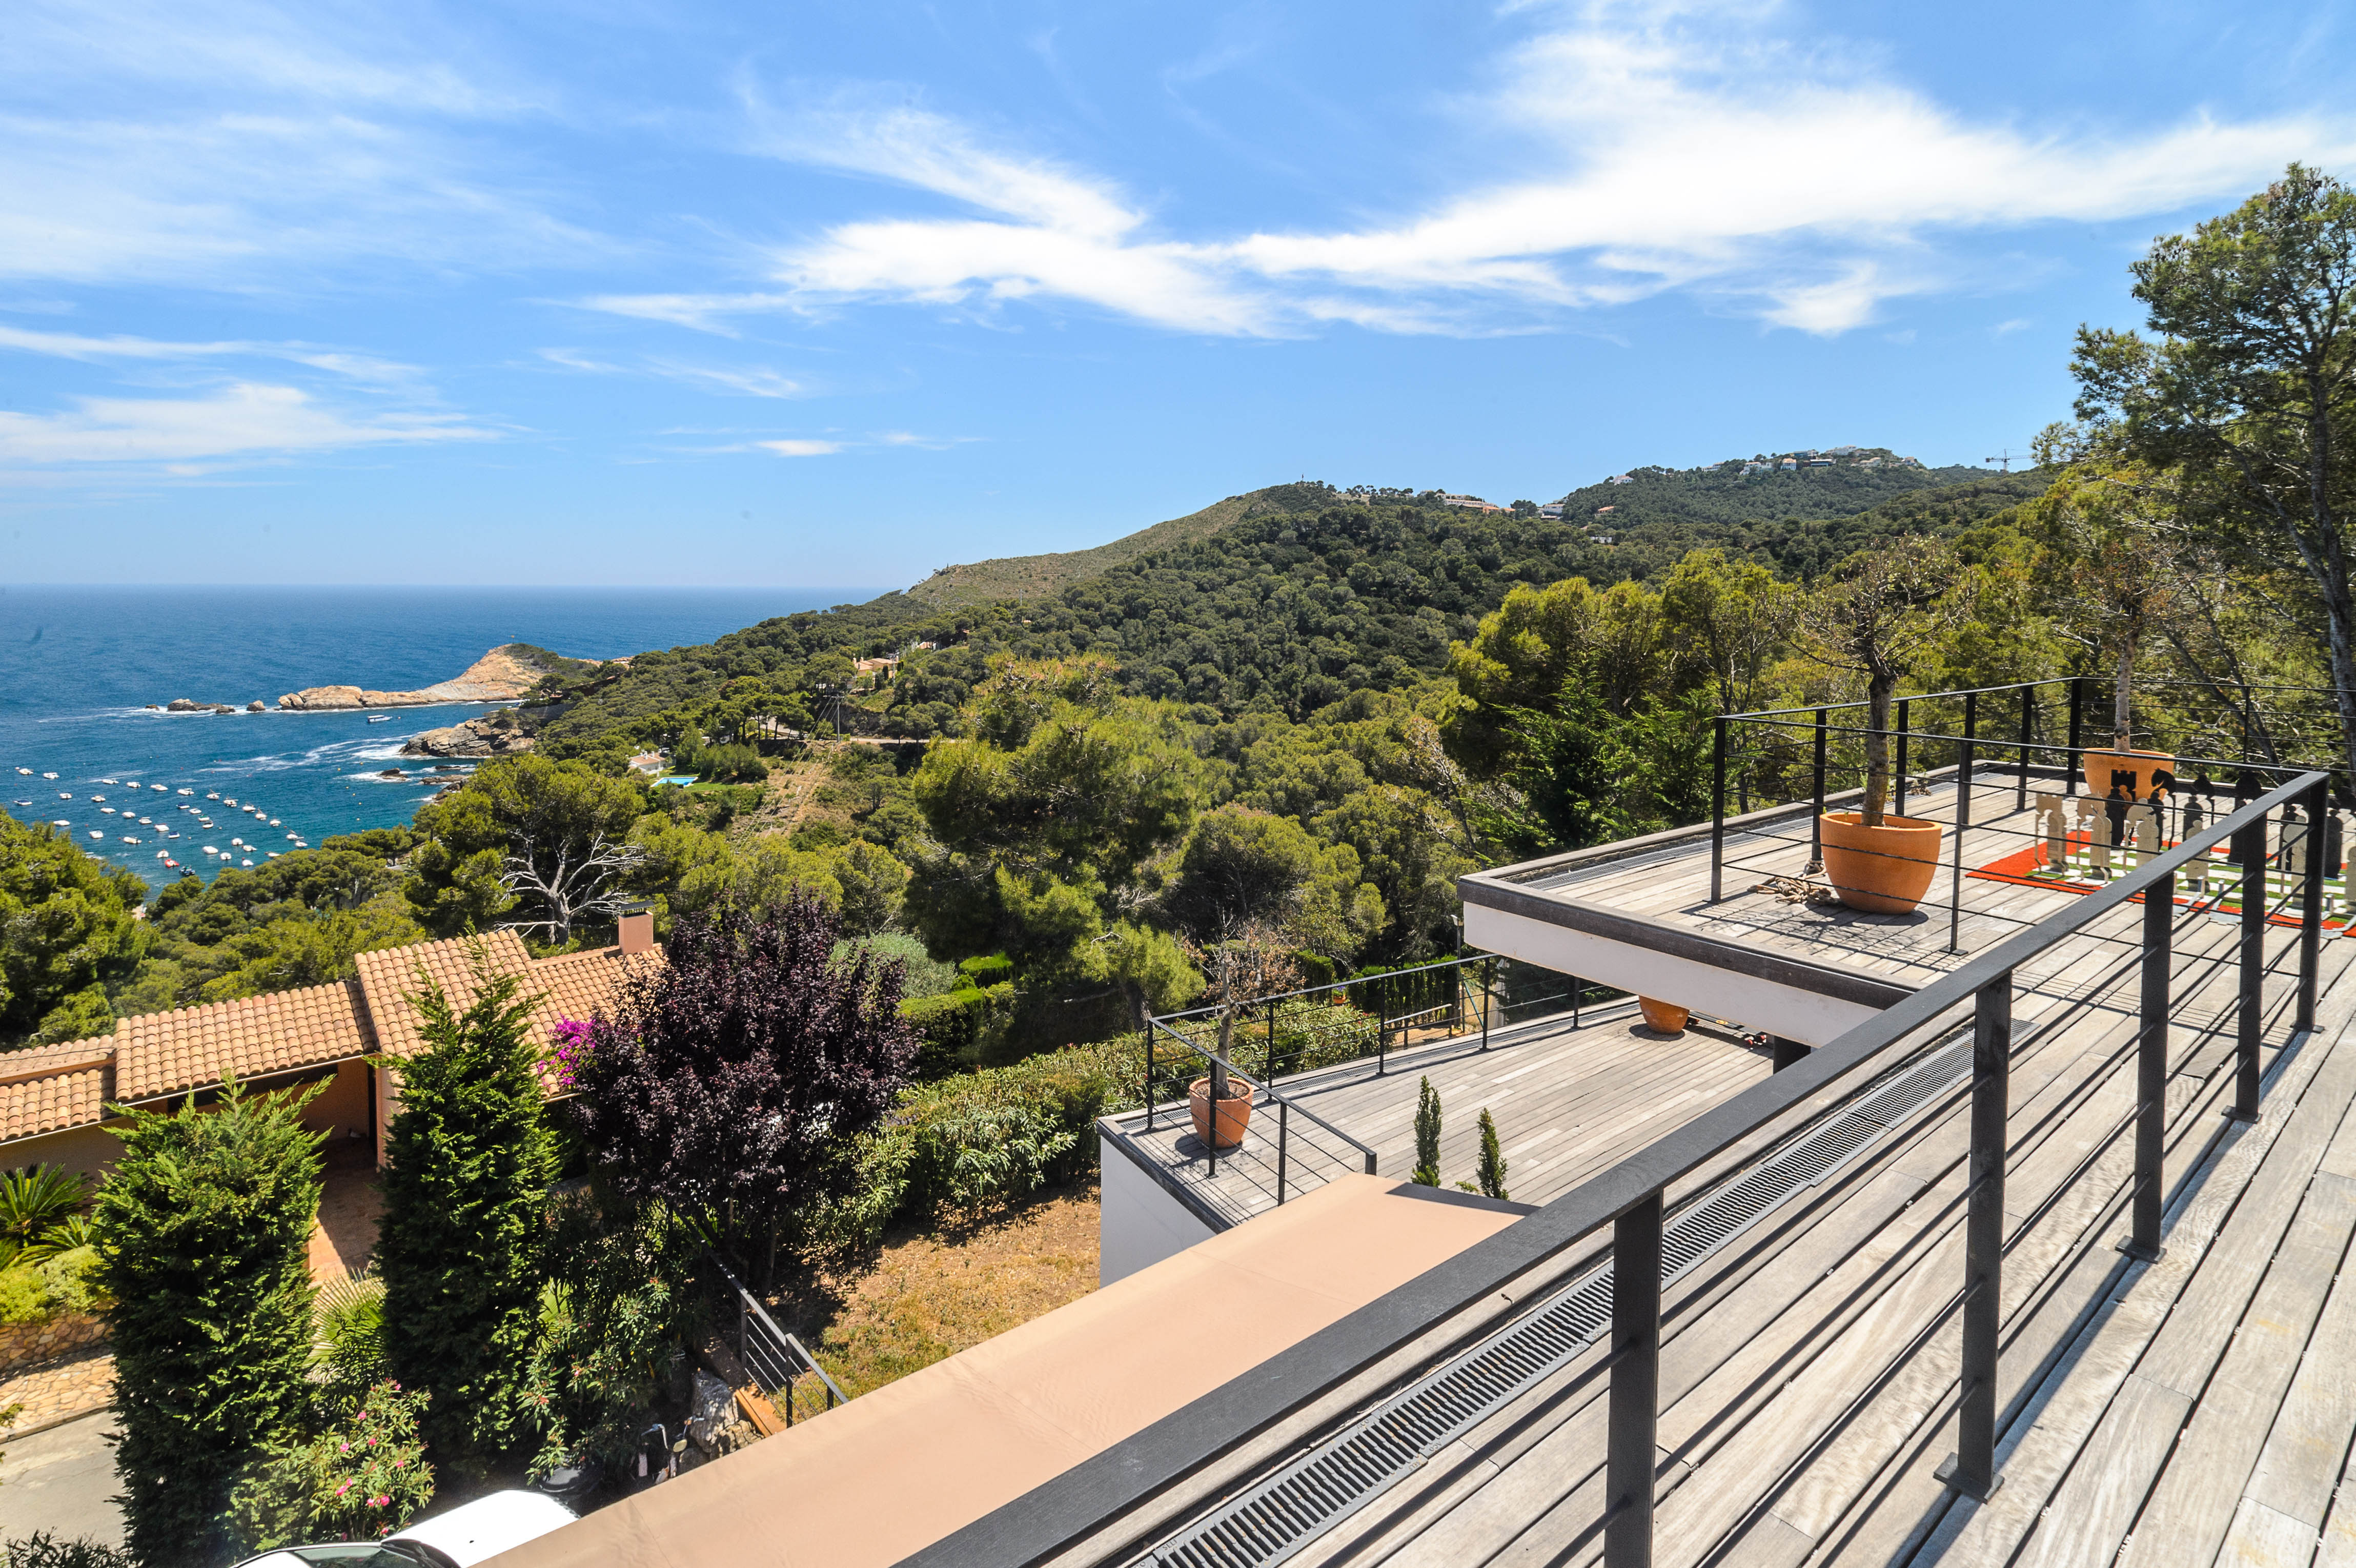 Single Family Home for Sale at Beautiful house with sea views in the Aiguafreda area Begur, Costa Brava, 17255 Spain